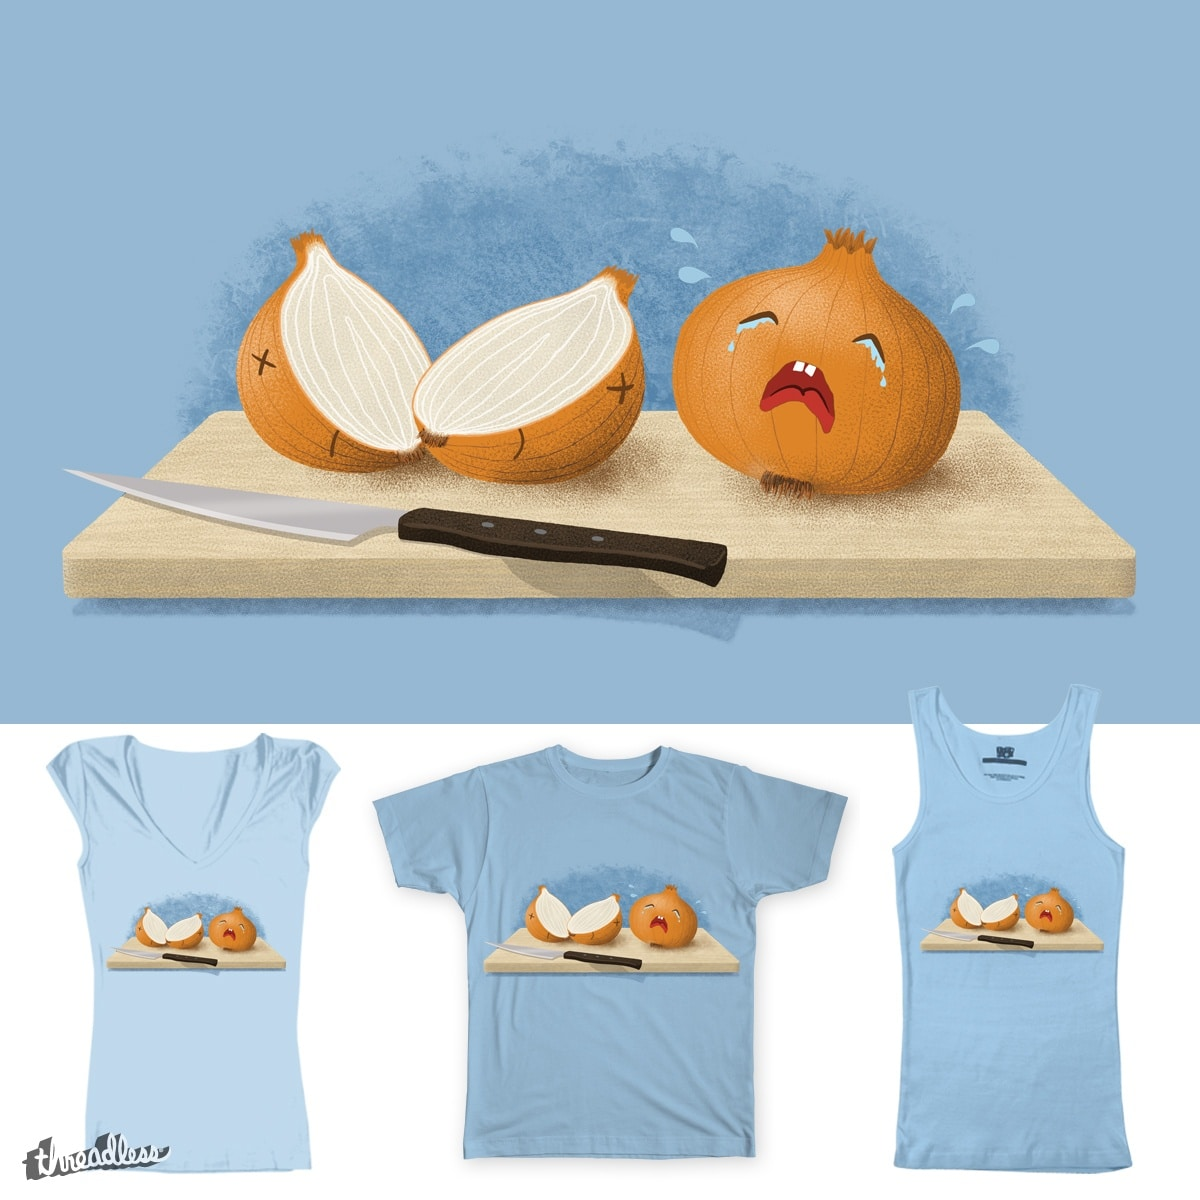 Can't Stop Crying by Candy Guru on Threadless